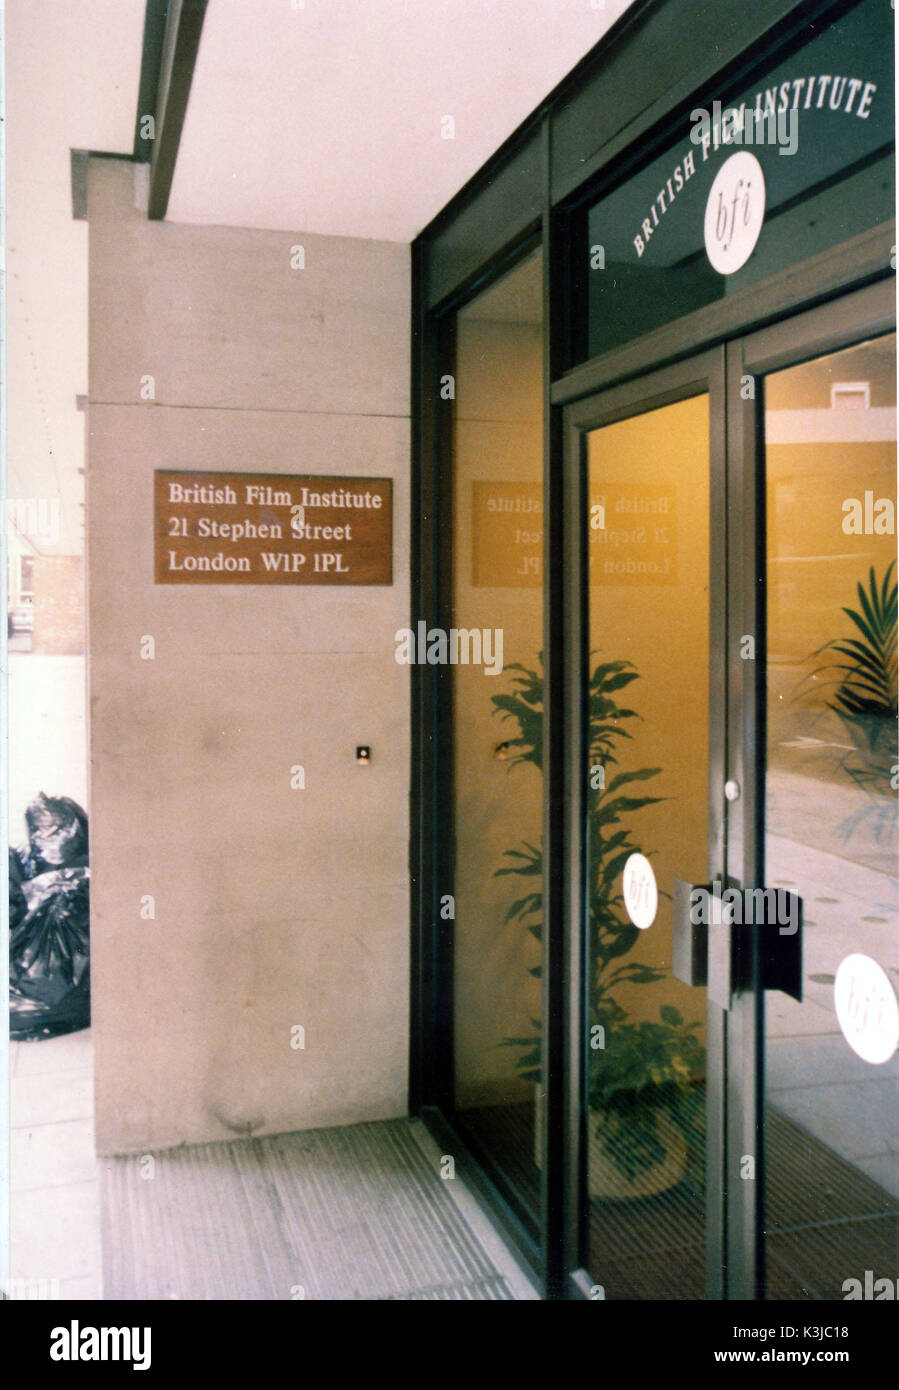 Headquarters of THE BRITISH FILM INSTITUTE at 21 Stephen Street, London - Stock Image